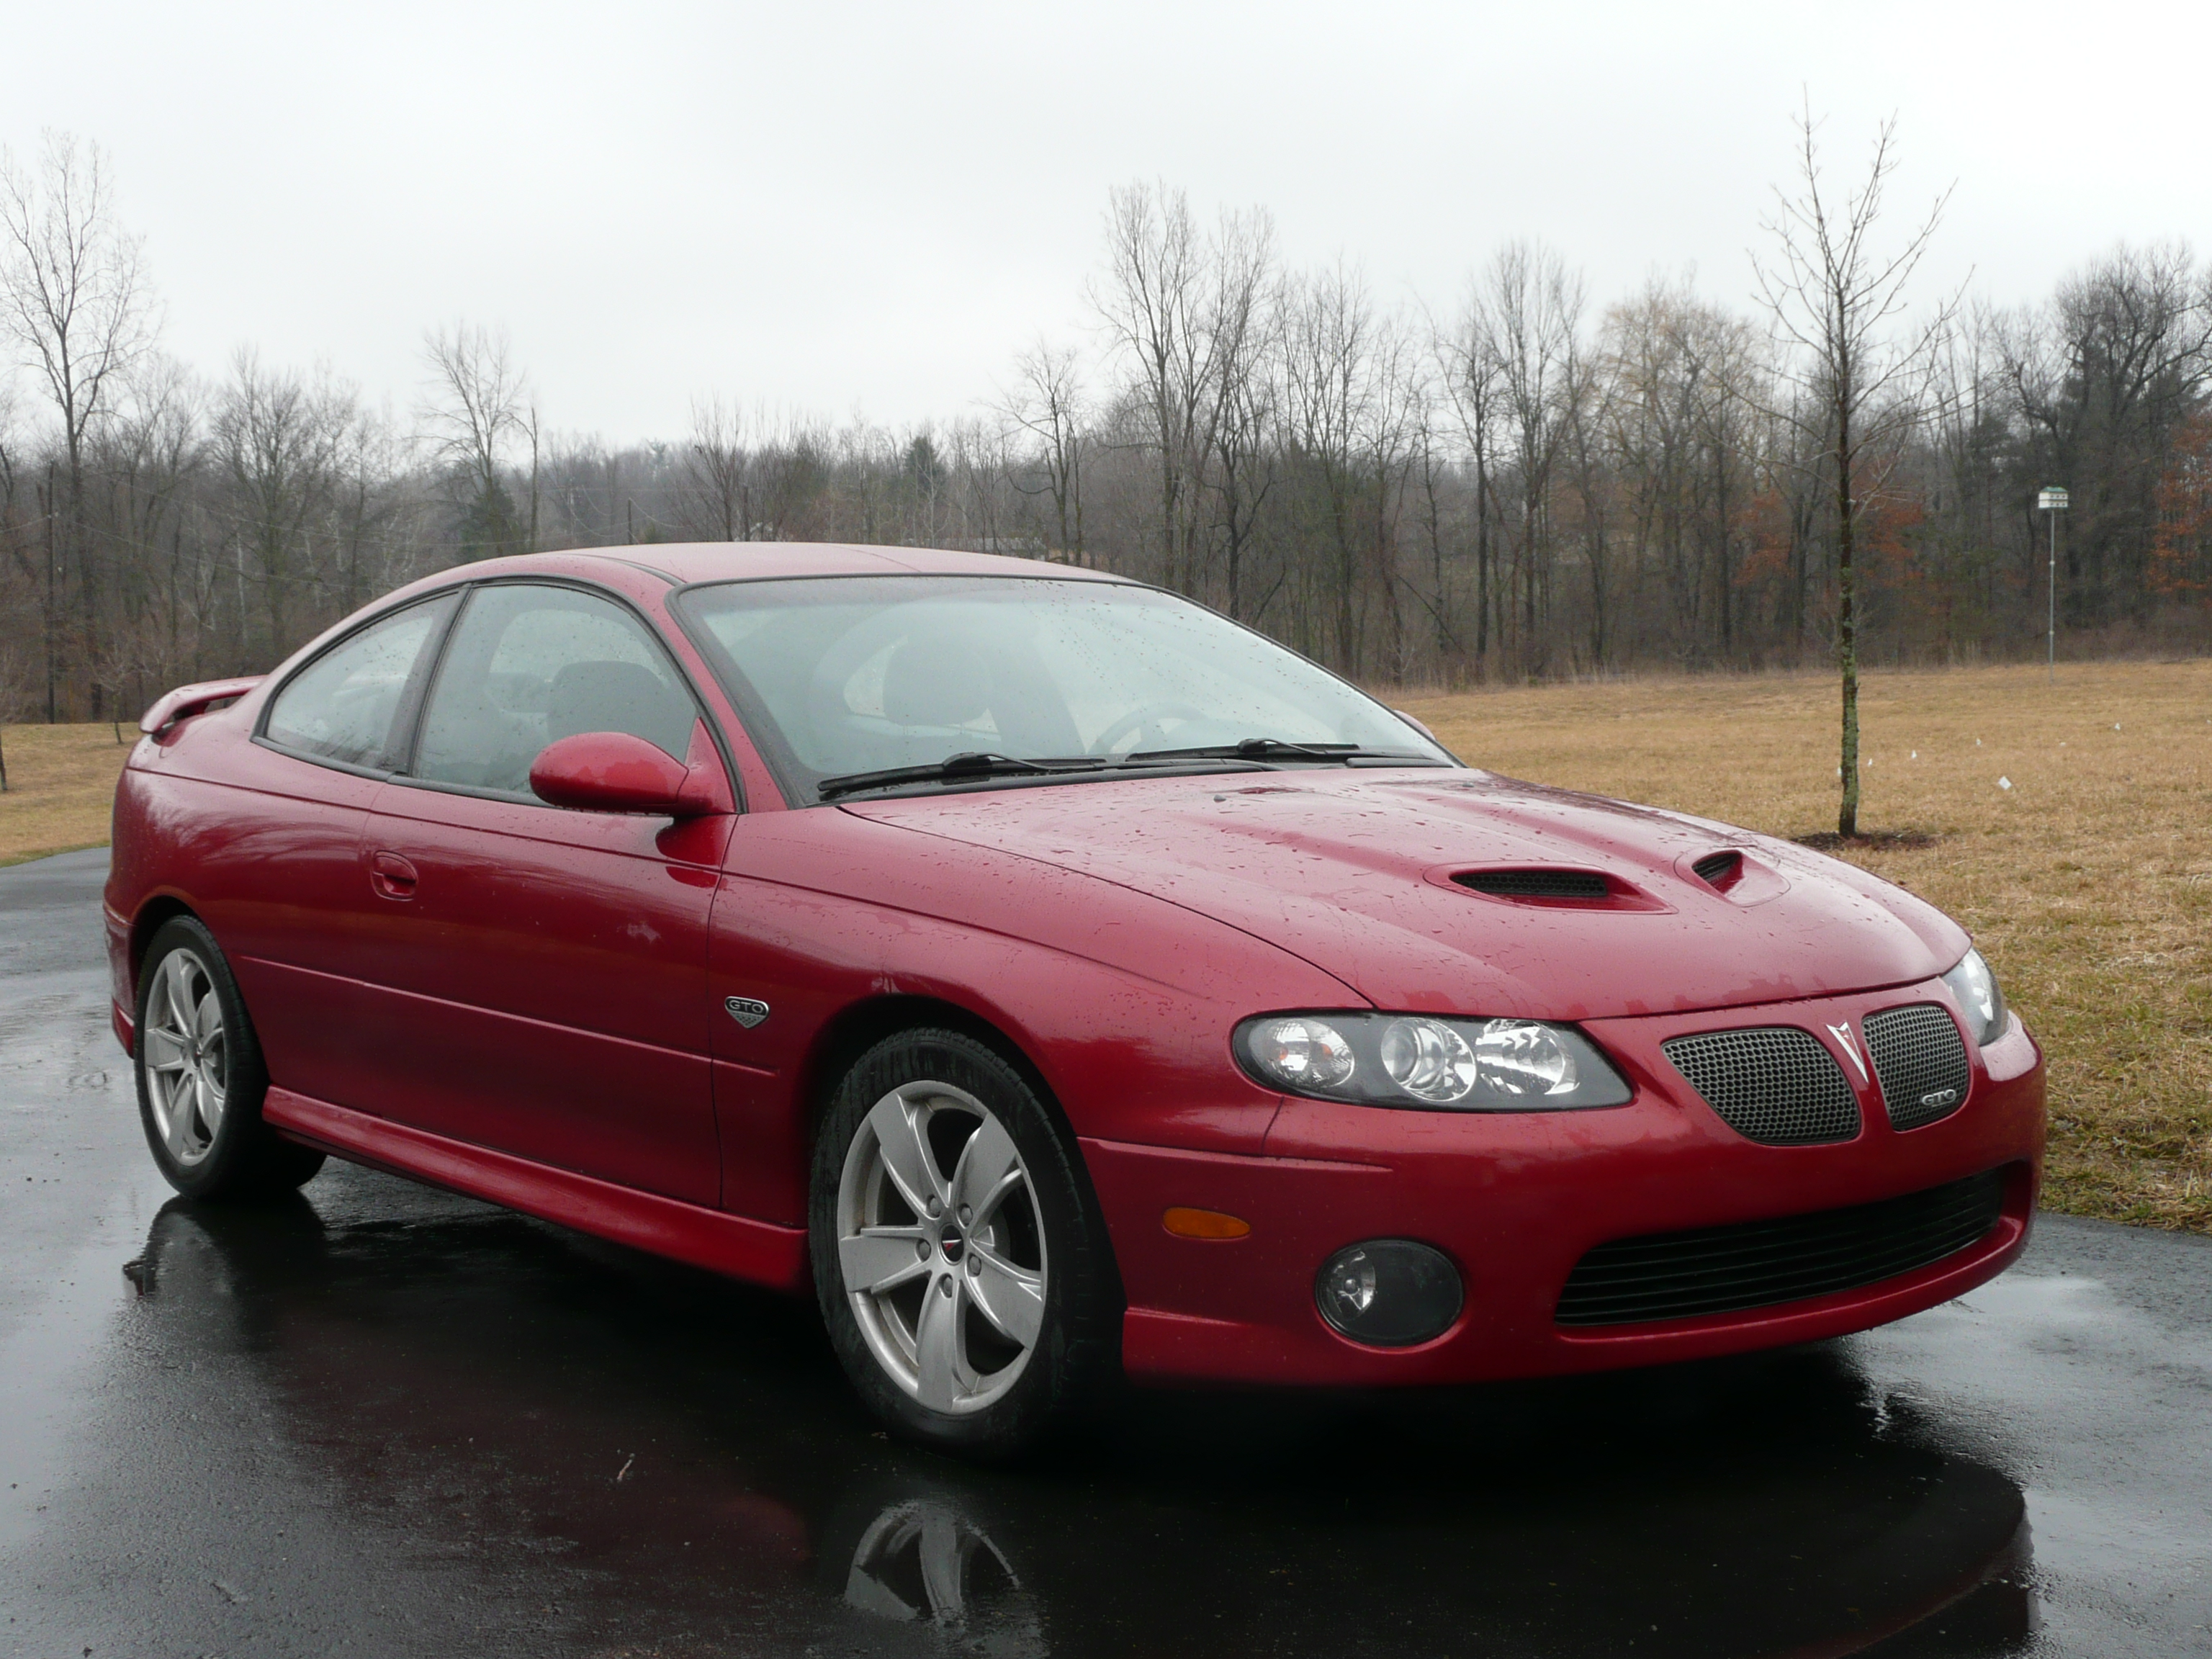 Pontiac Sunfire Paint Codes